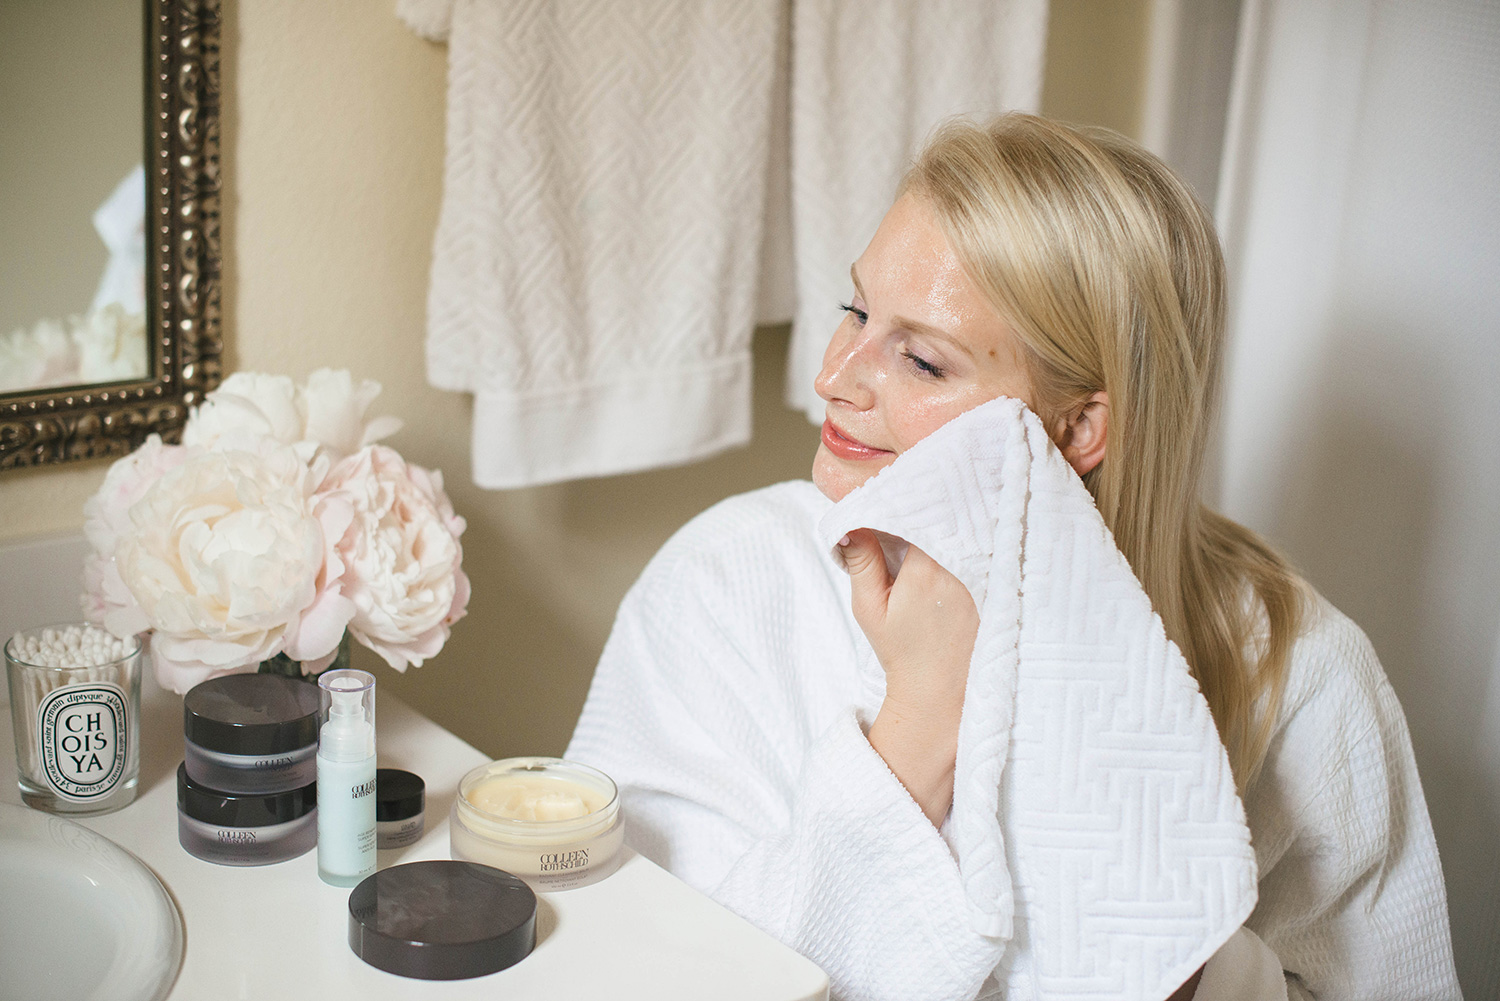 Achieving A Luxurious At-Home Facial | The Style Scribe